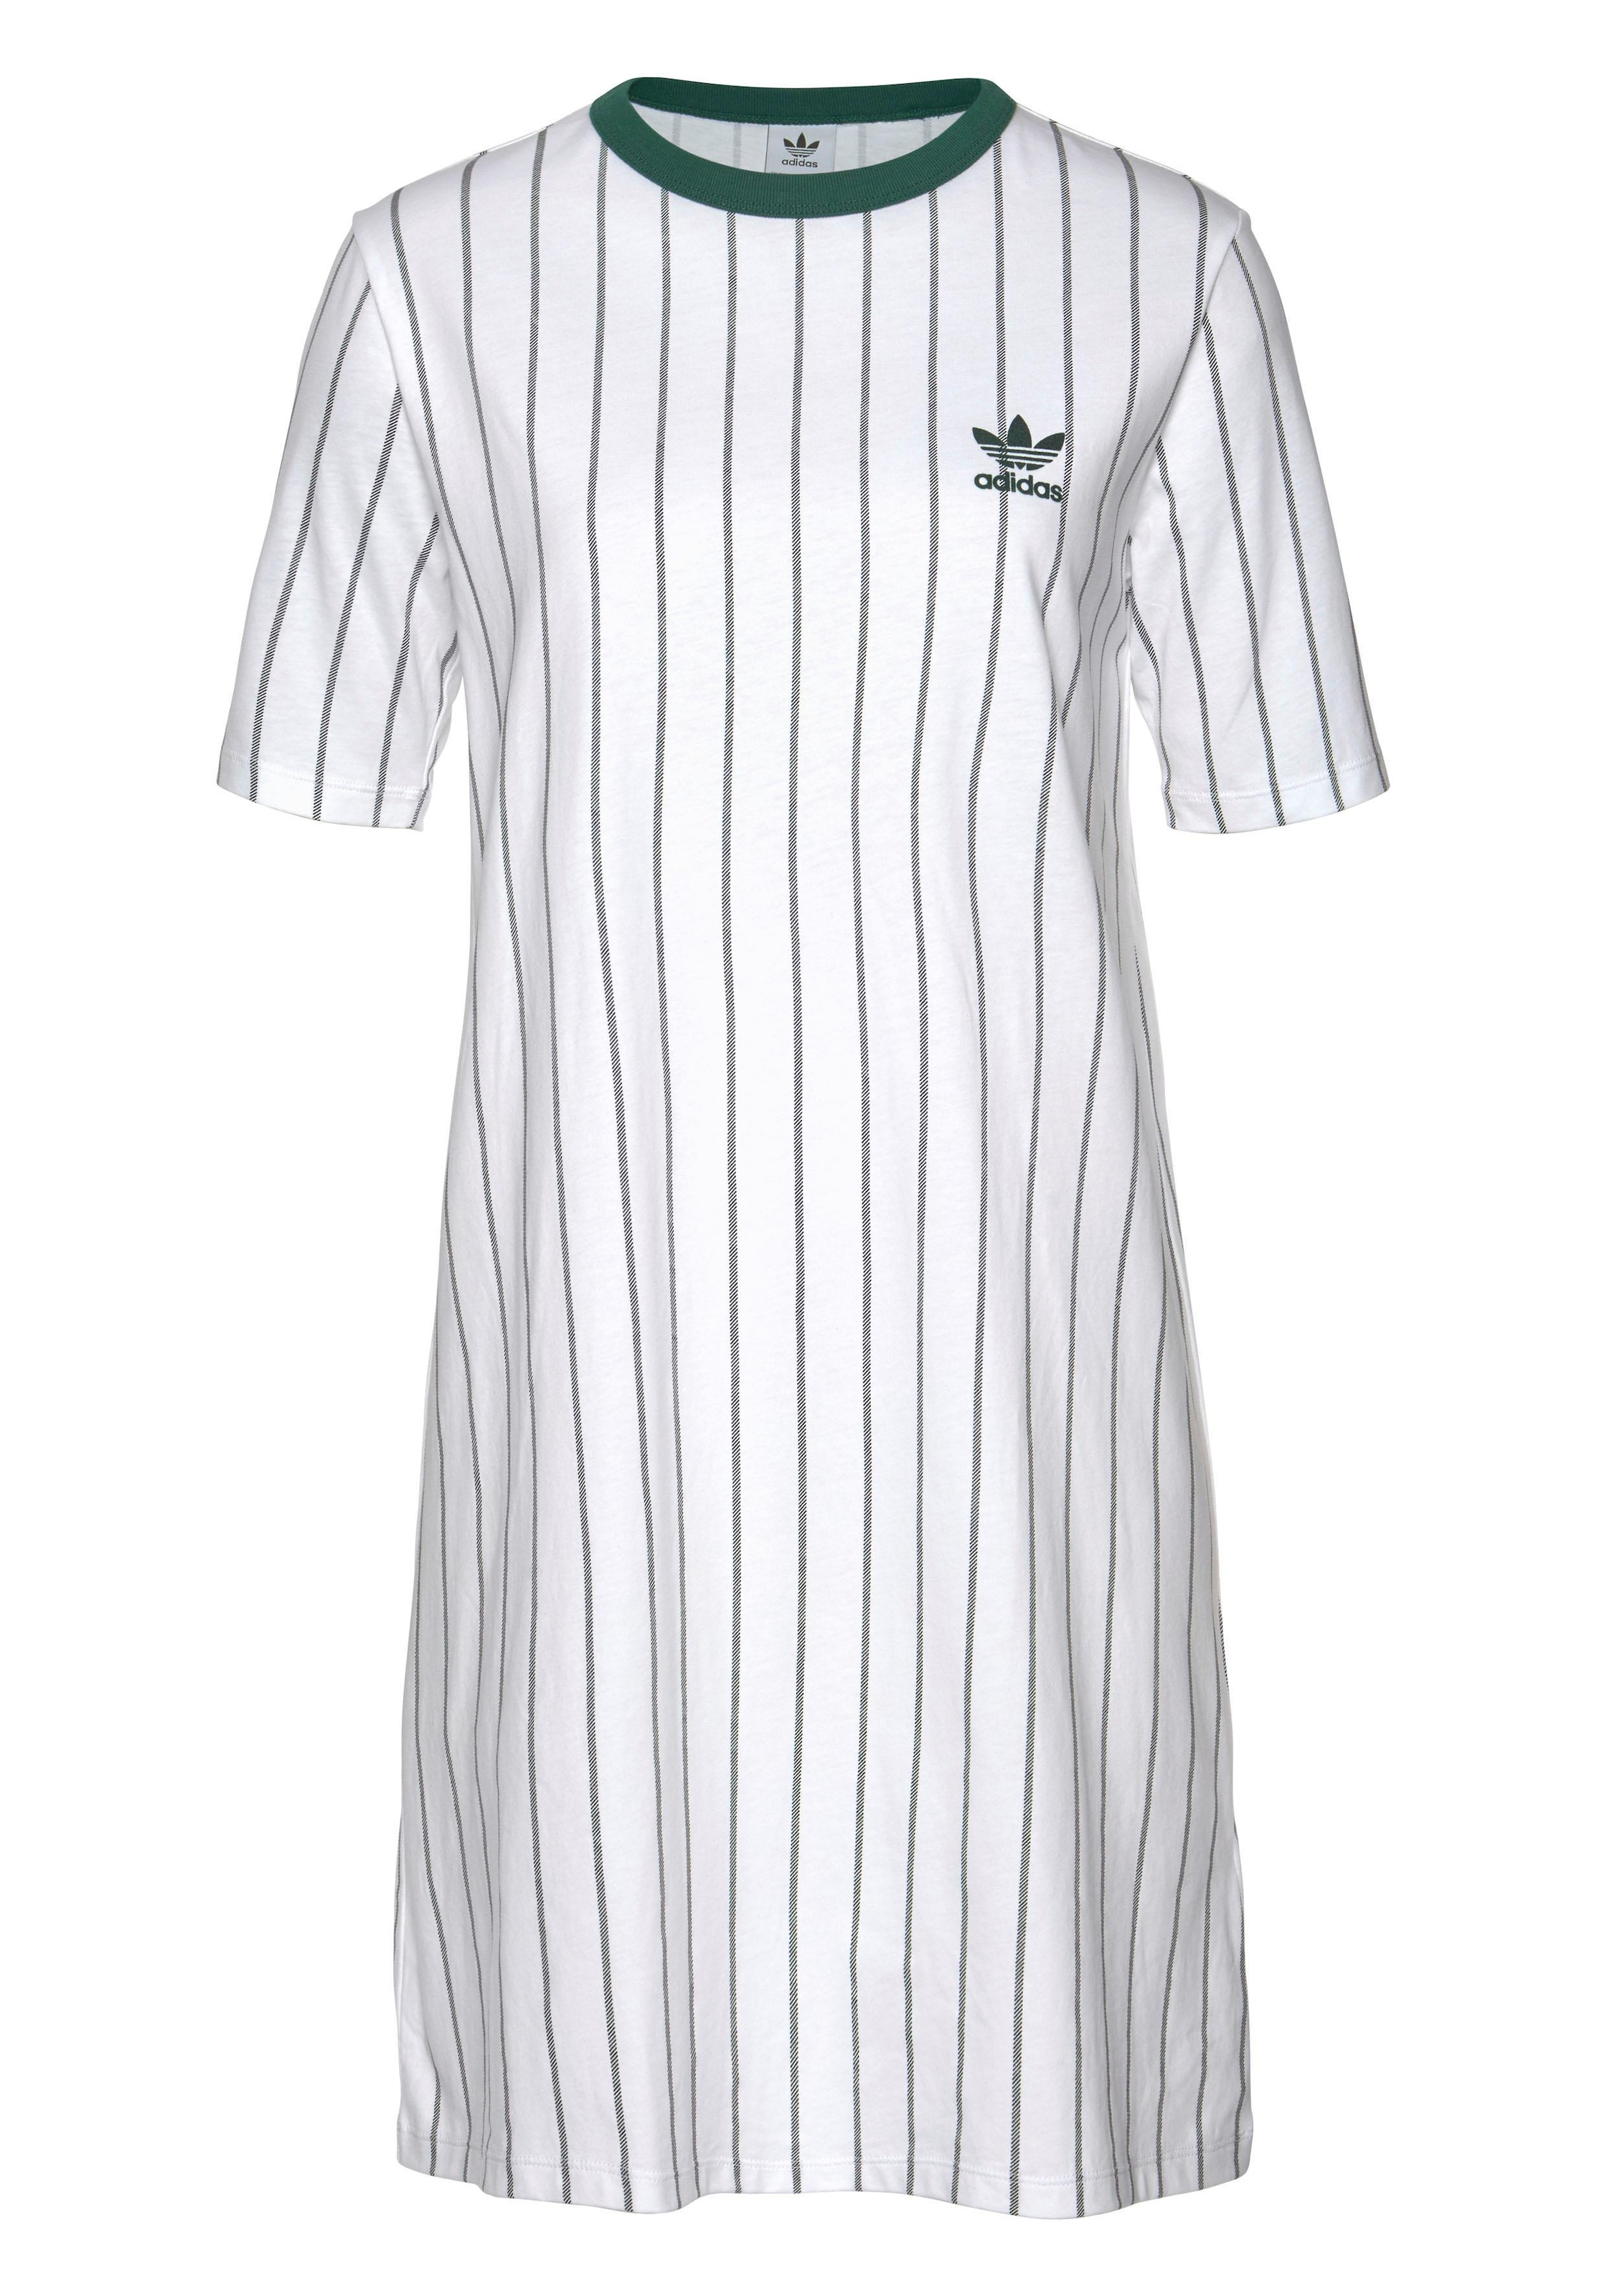 adidas Originals Shirtkleid »T Shirt Kleid«